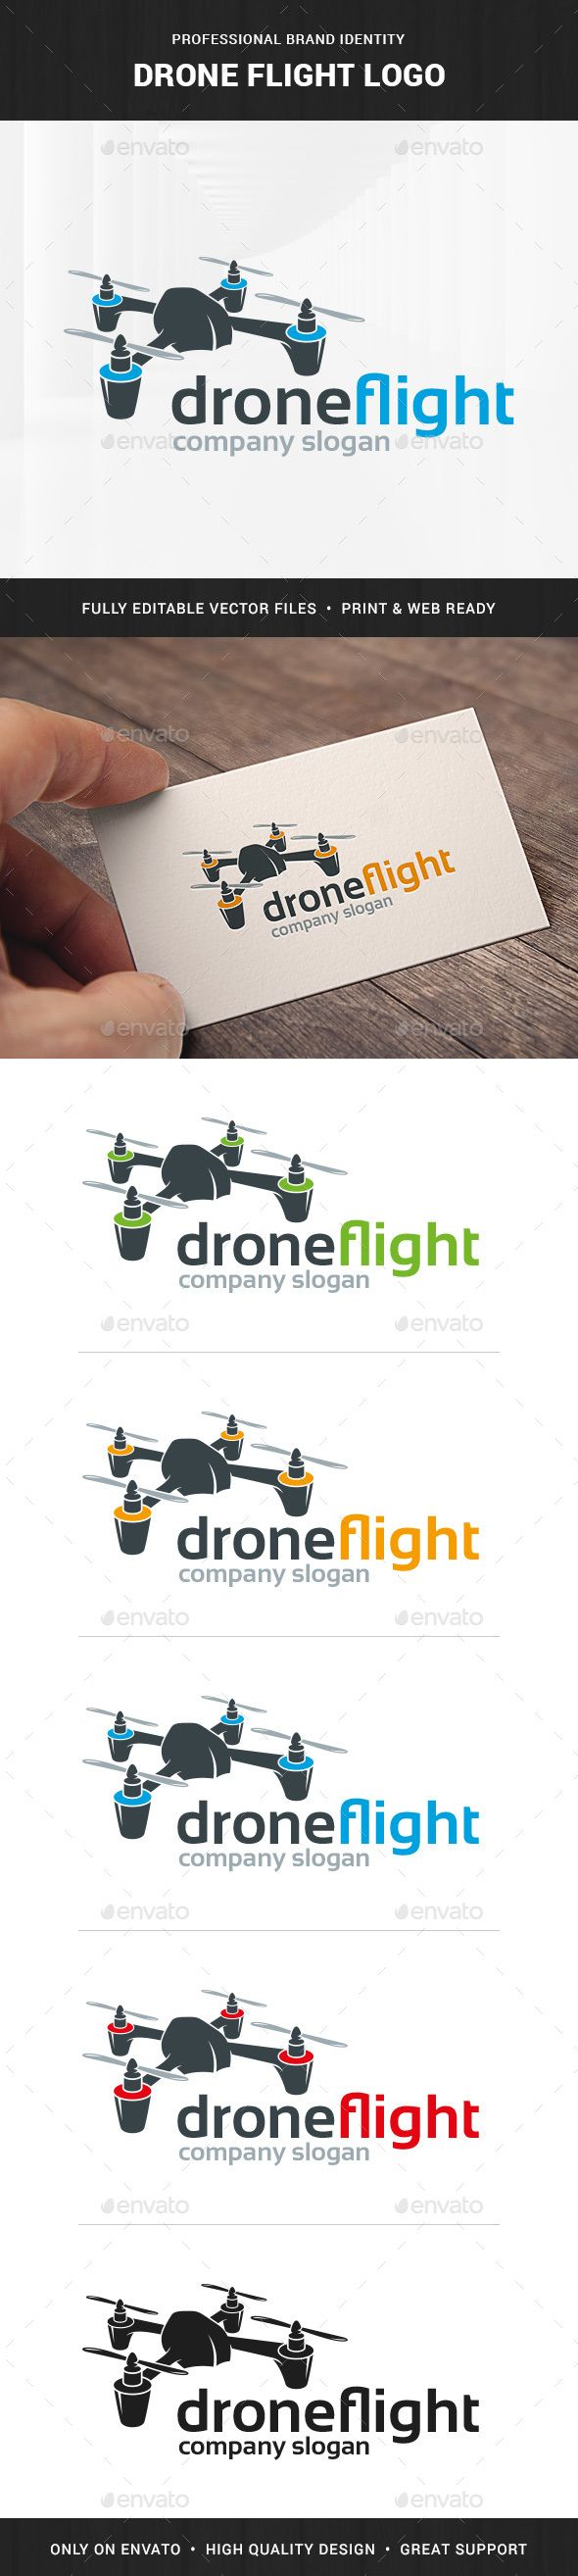 Drone Flight  - Logo Design Template Vector #logotype Download it here: http://graphicriver.net/item/drone-flight-logo-template/12744793?s_rank=141?ref=nesto